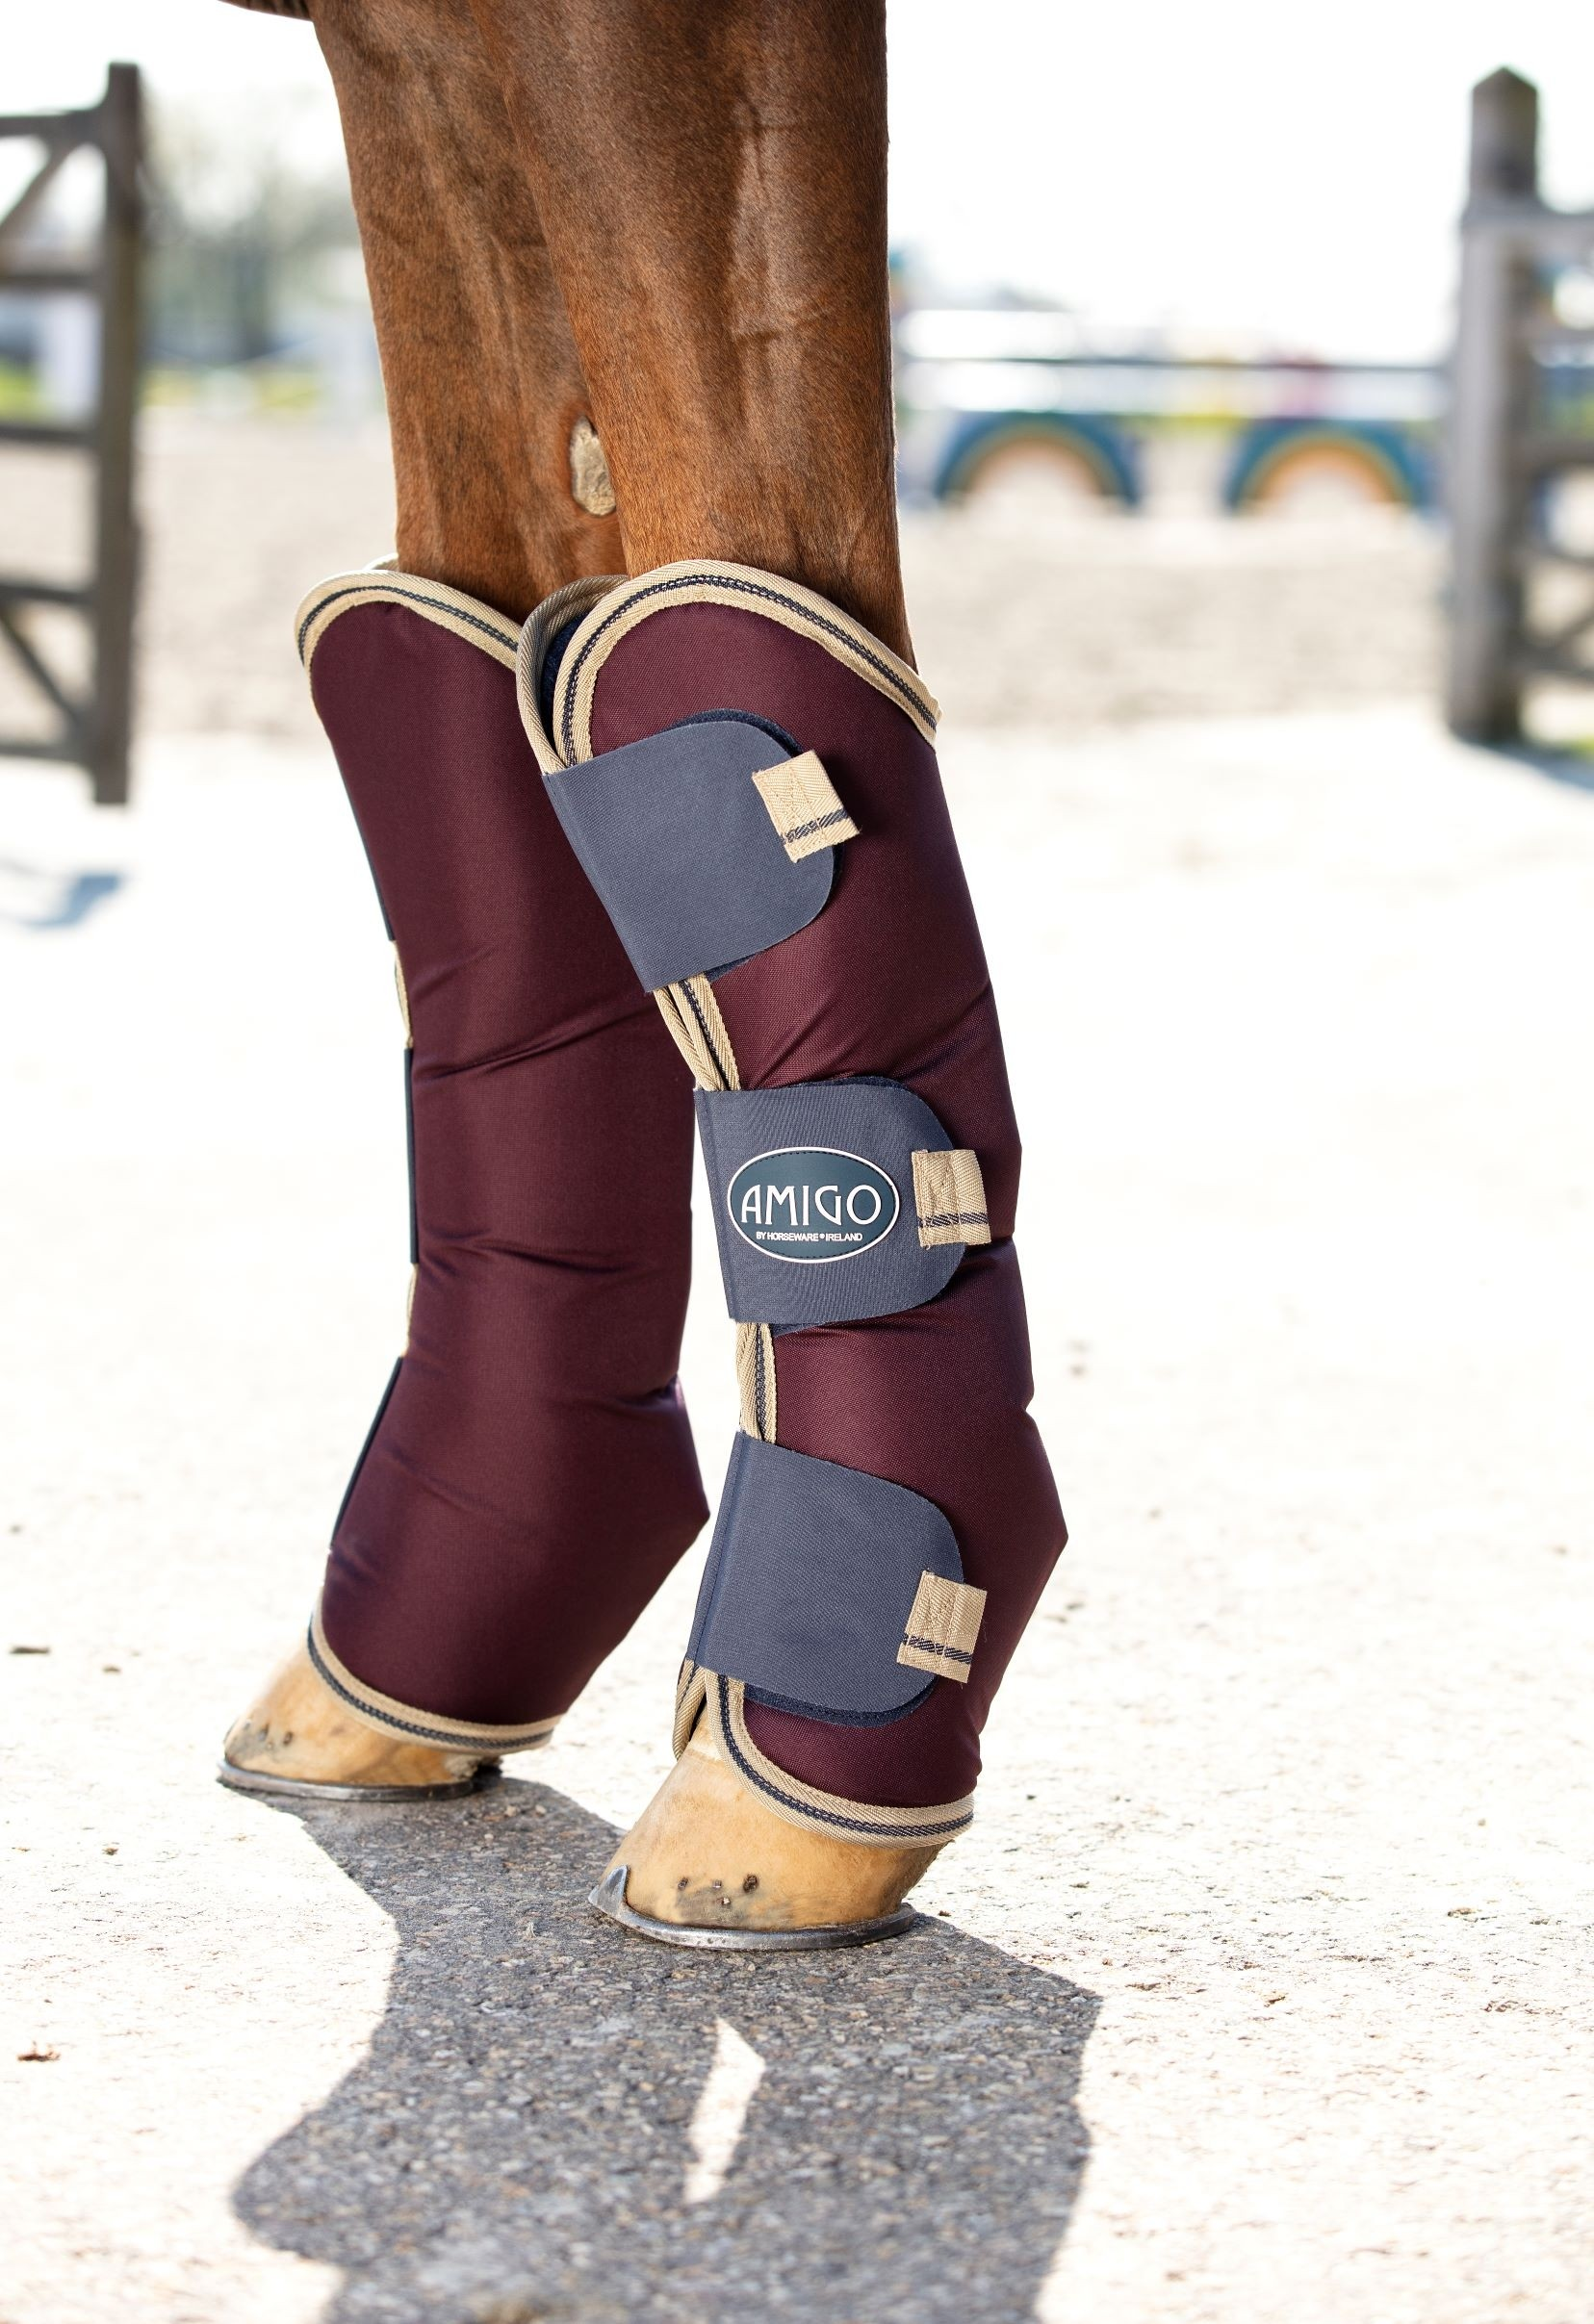 Horseware Amigo Ripstop Travel Boots  - Thomas Irving's equestrian and accessories store  Horseware Amigo Ripstop Travel Boots